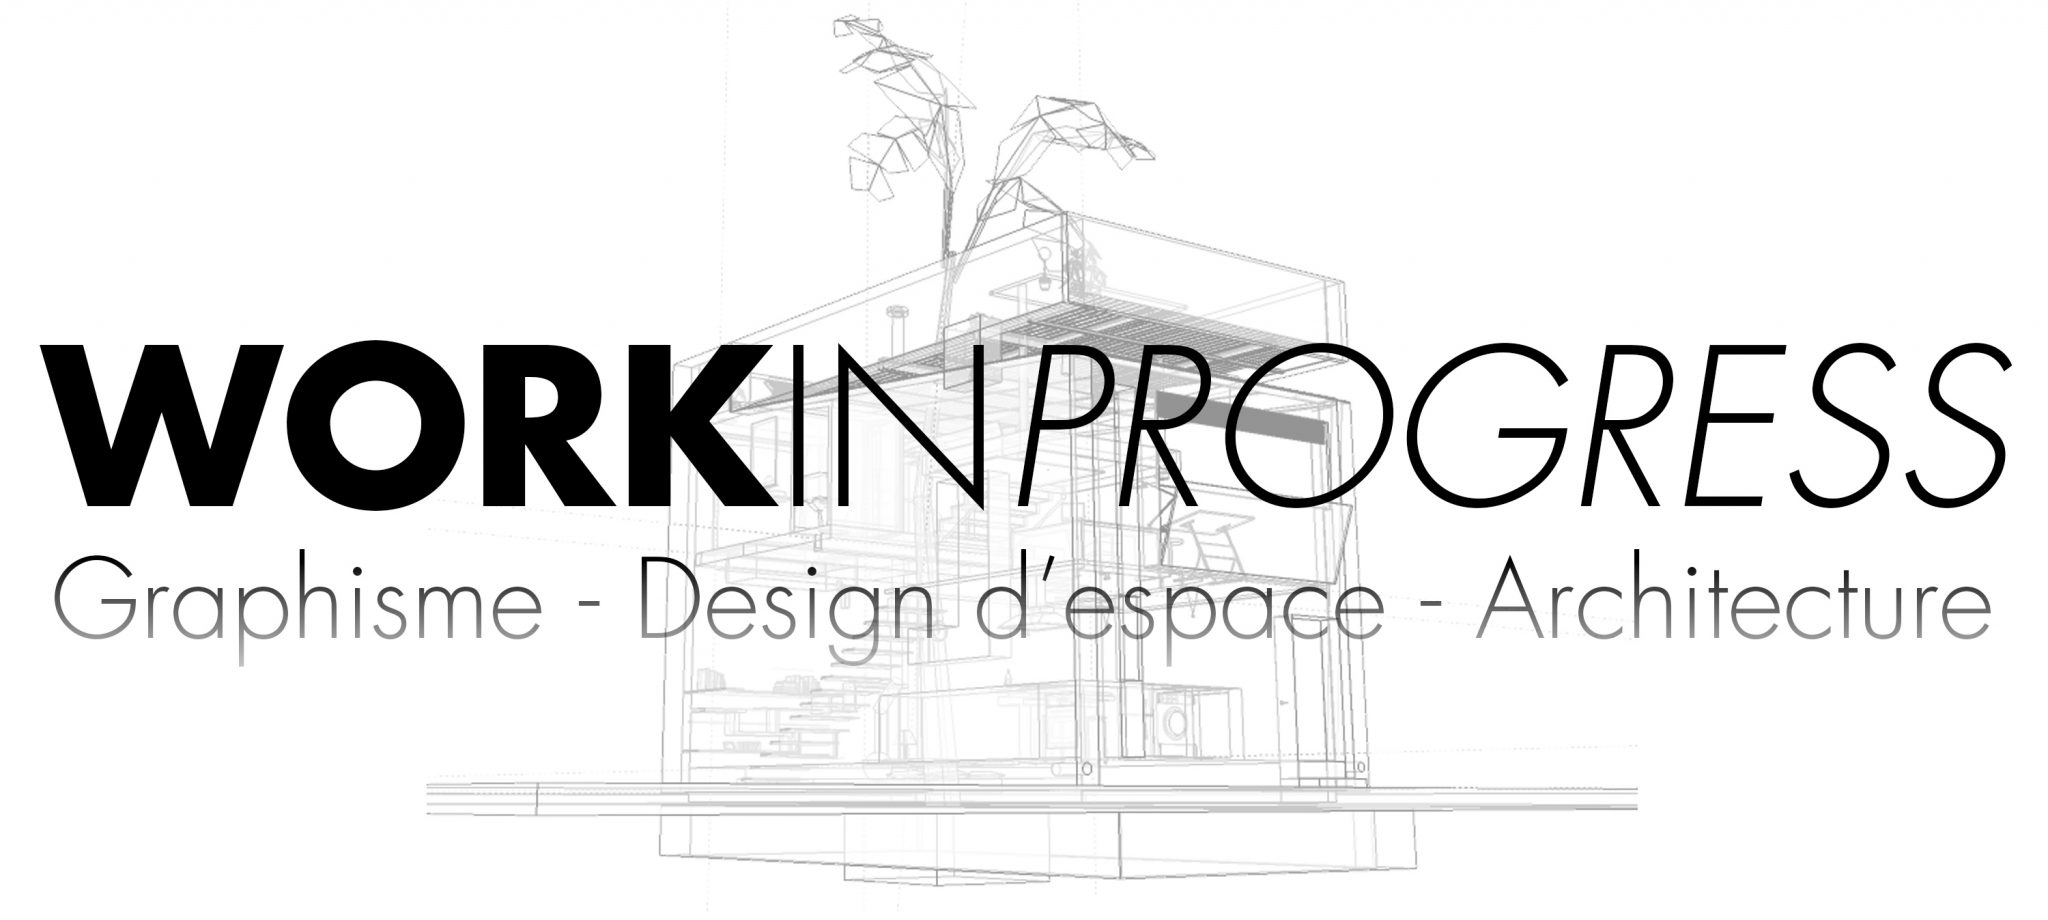 WORKINPROGRESS -Studio 3D perspective architecture  design, Montpellier, Languedoc Roussillon